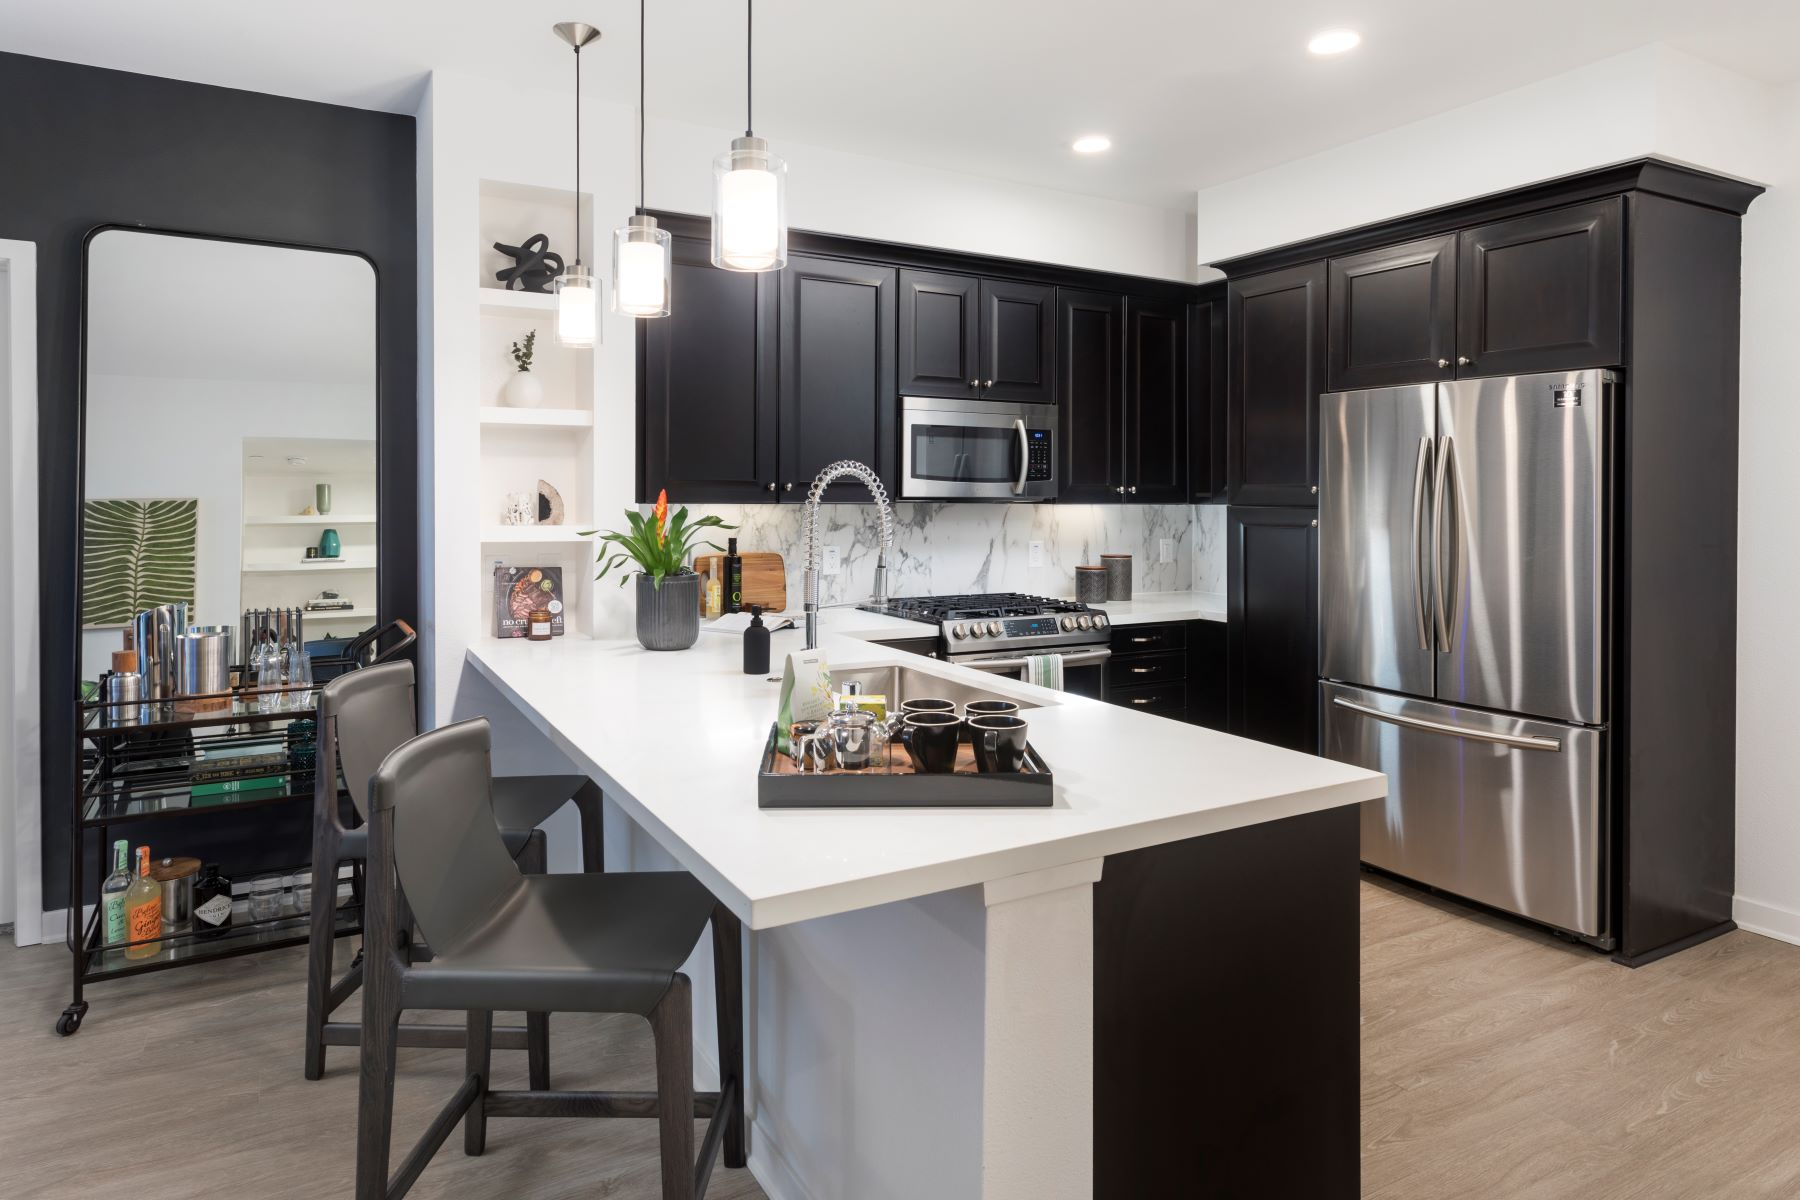 designer kitchen with stainless steel appliances at broadstone arden